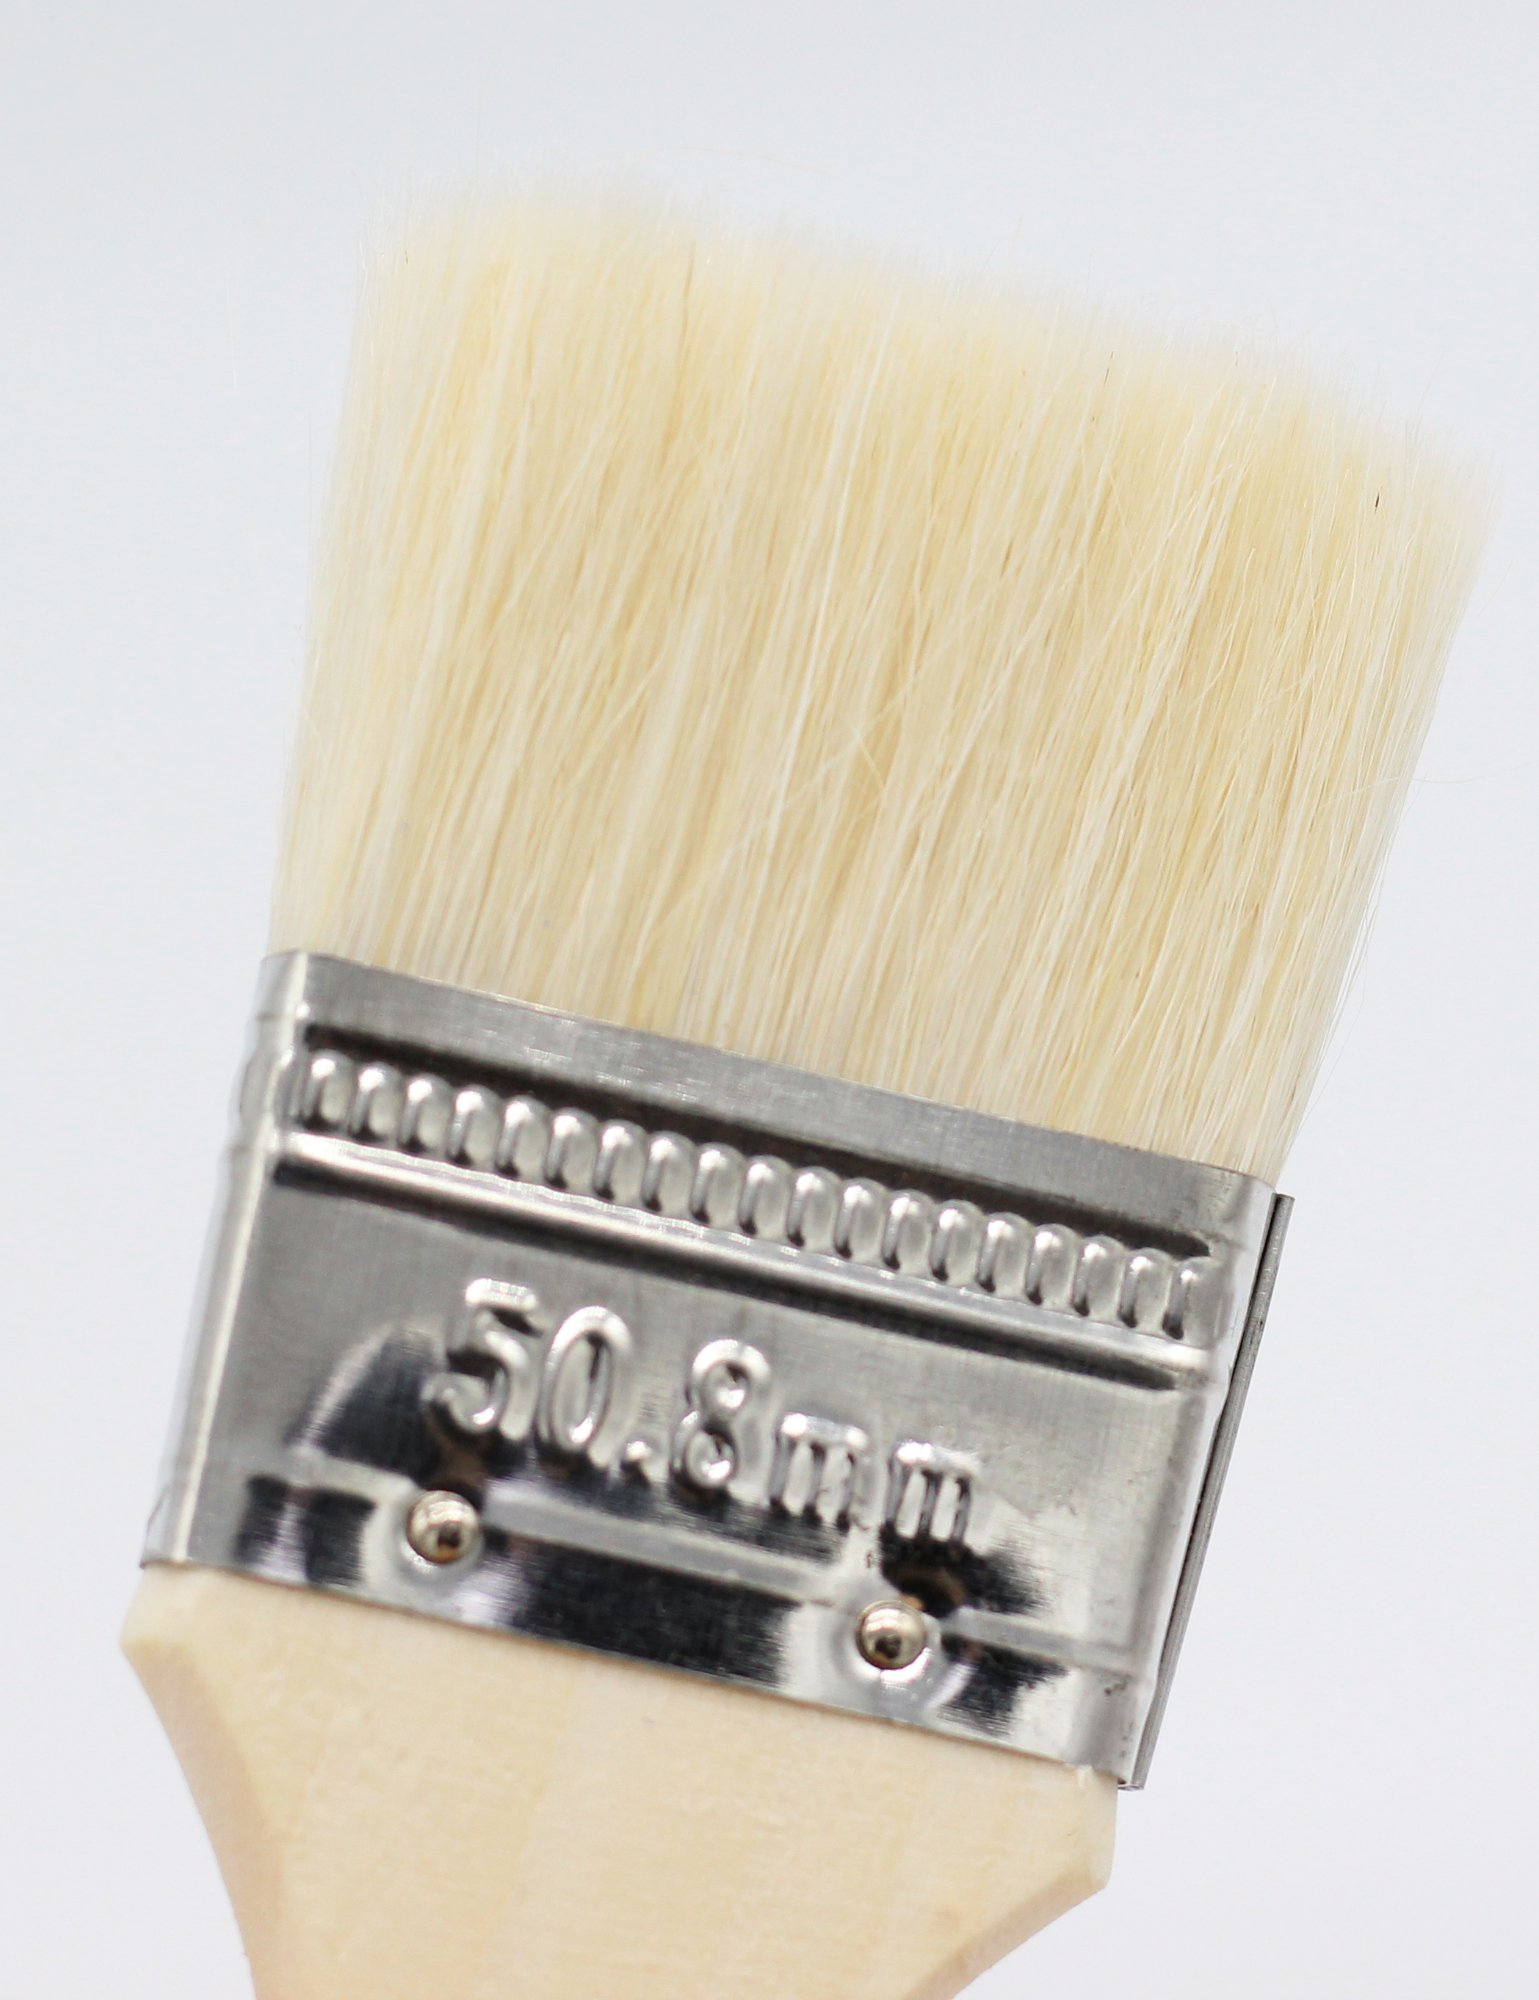 Fiomia Pastry Brush 6 High quality woolen bristle: thick and flexible, safe and eco-friendly, even pasting, beautiful texture, durable Full wooden handle: streamlined design and comfort grip, easy to hang and save space High efficiency: absorbent, save time and effort